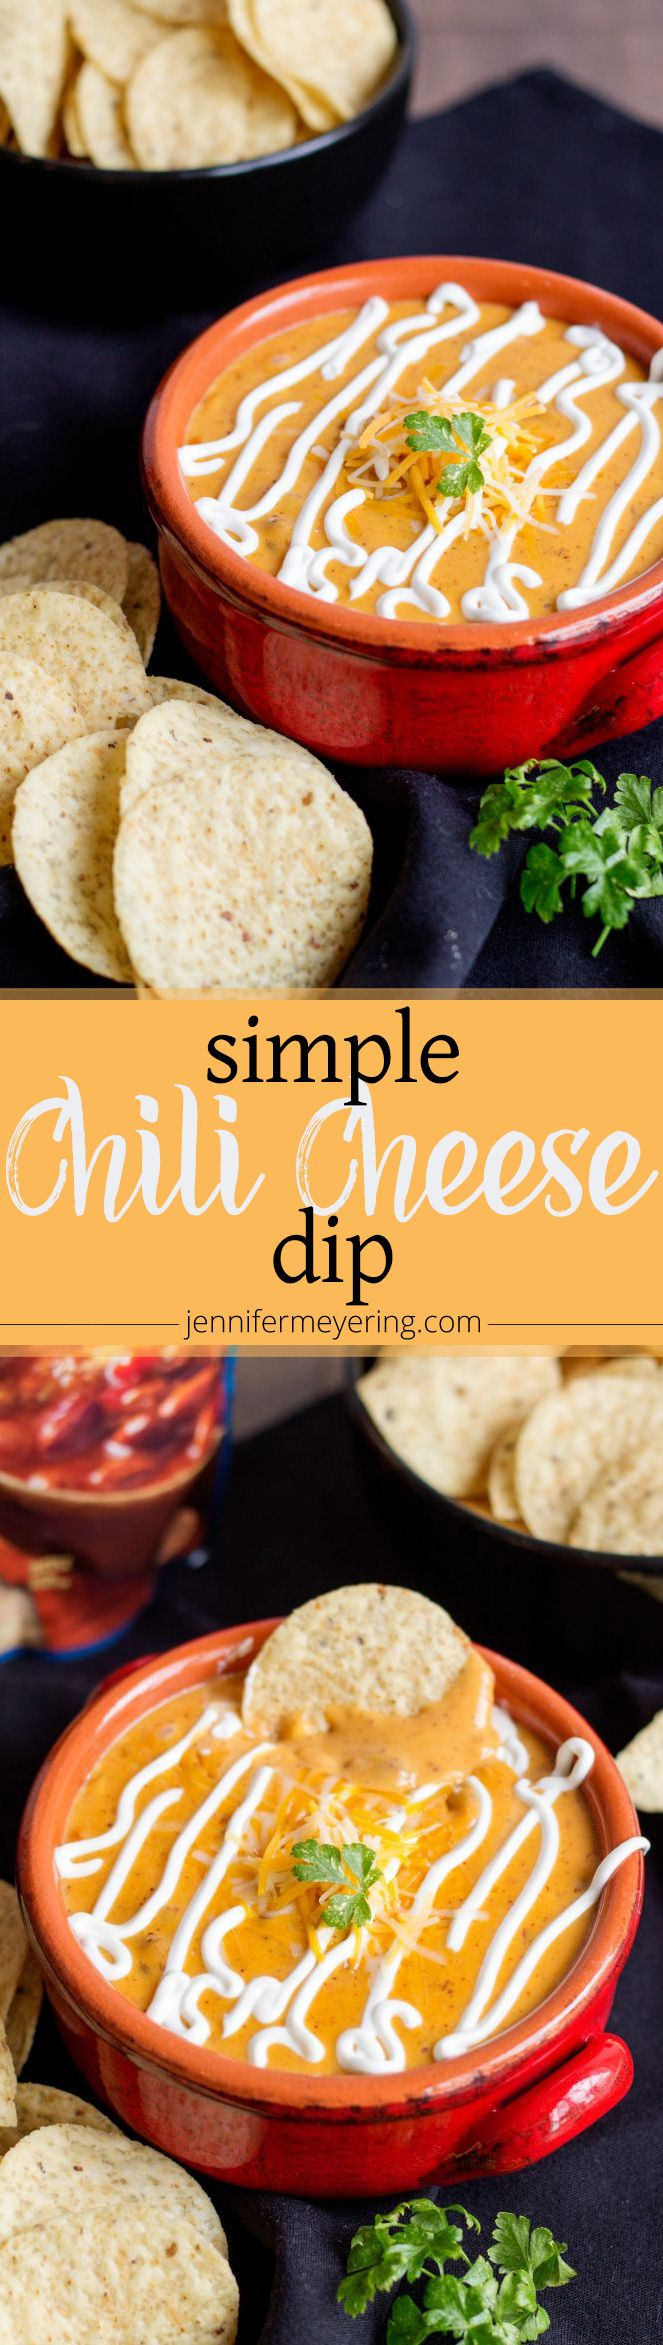 Simple Chili Cheese Dip